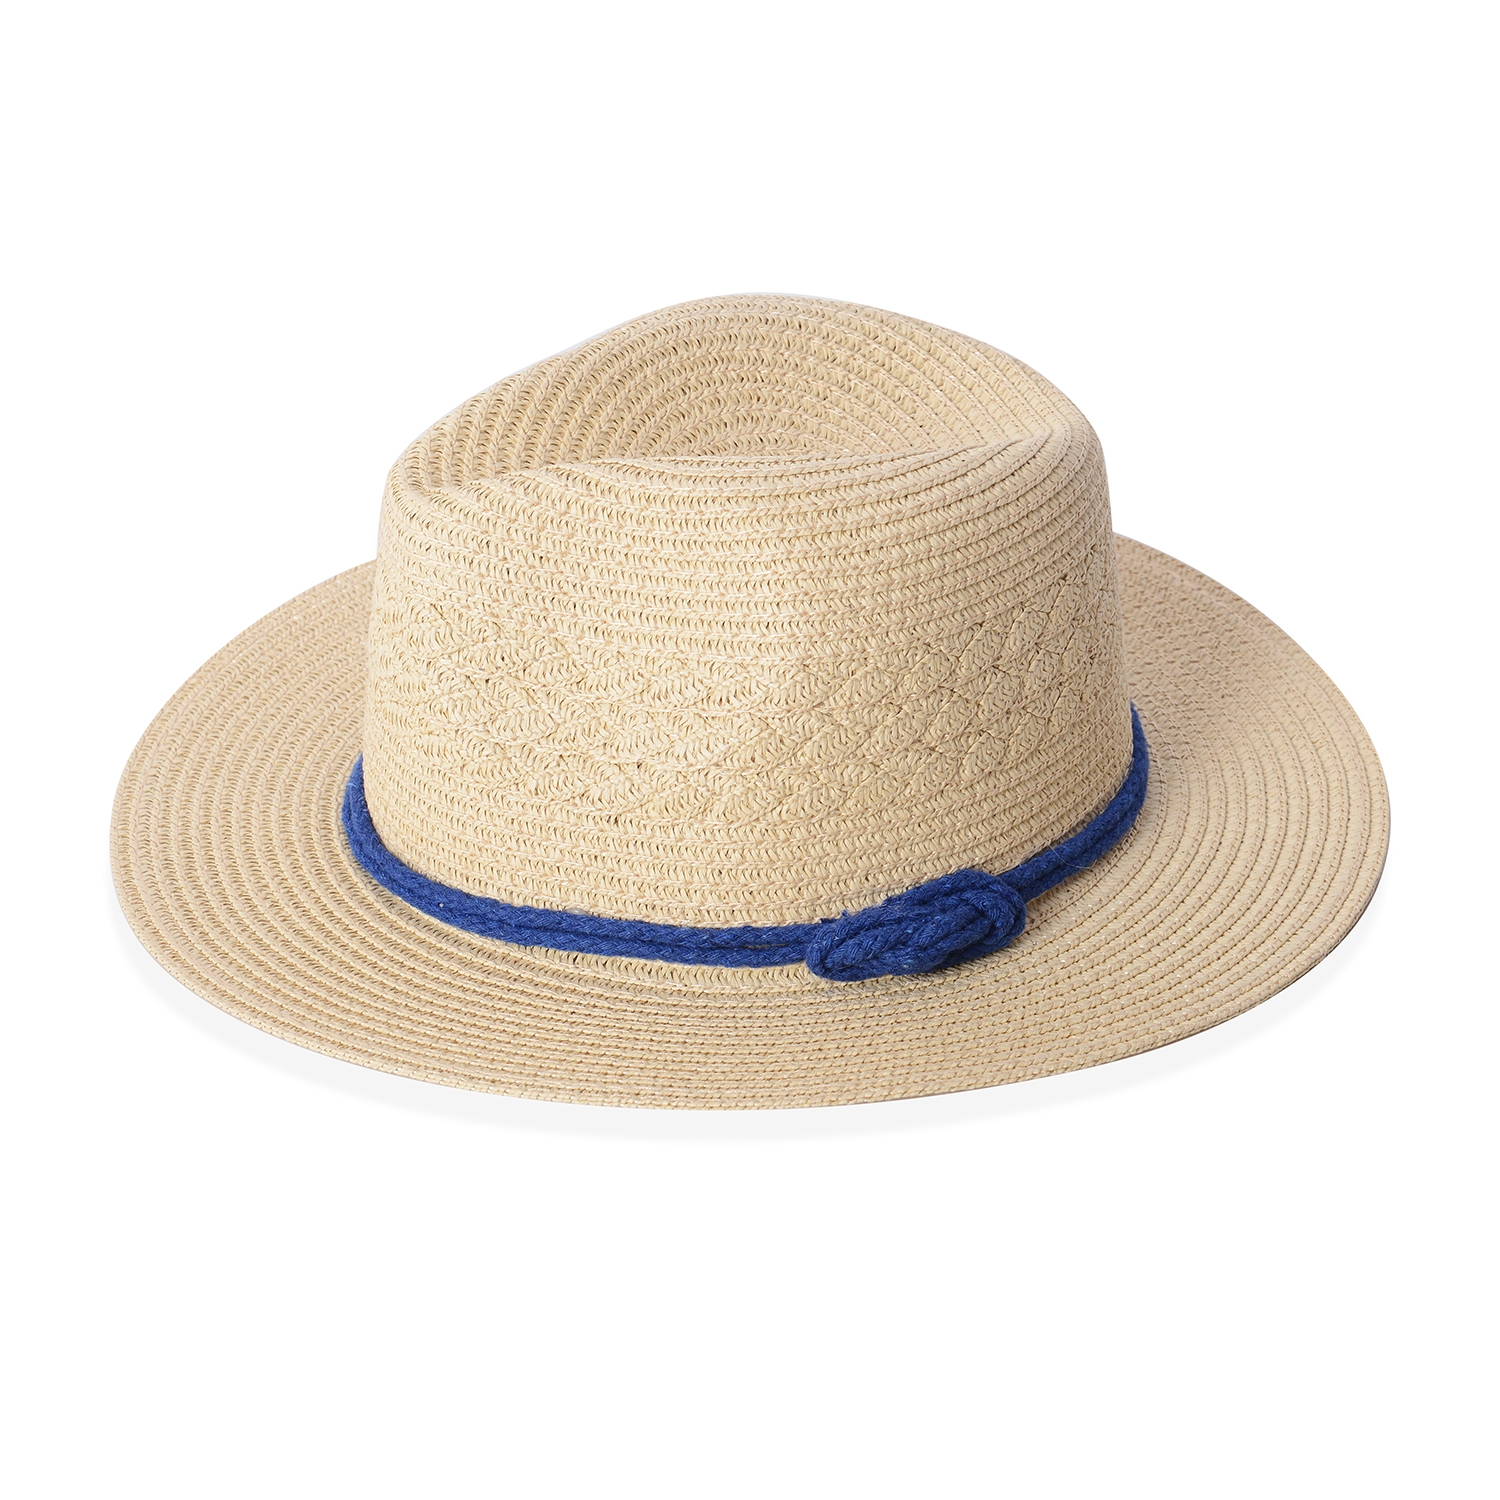 3fbda0f2f33c6 Natural 100% Straw Paper Bow String Fedora Hat (12.5 in)